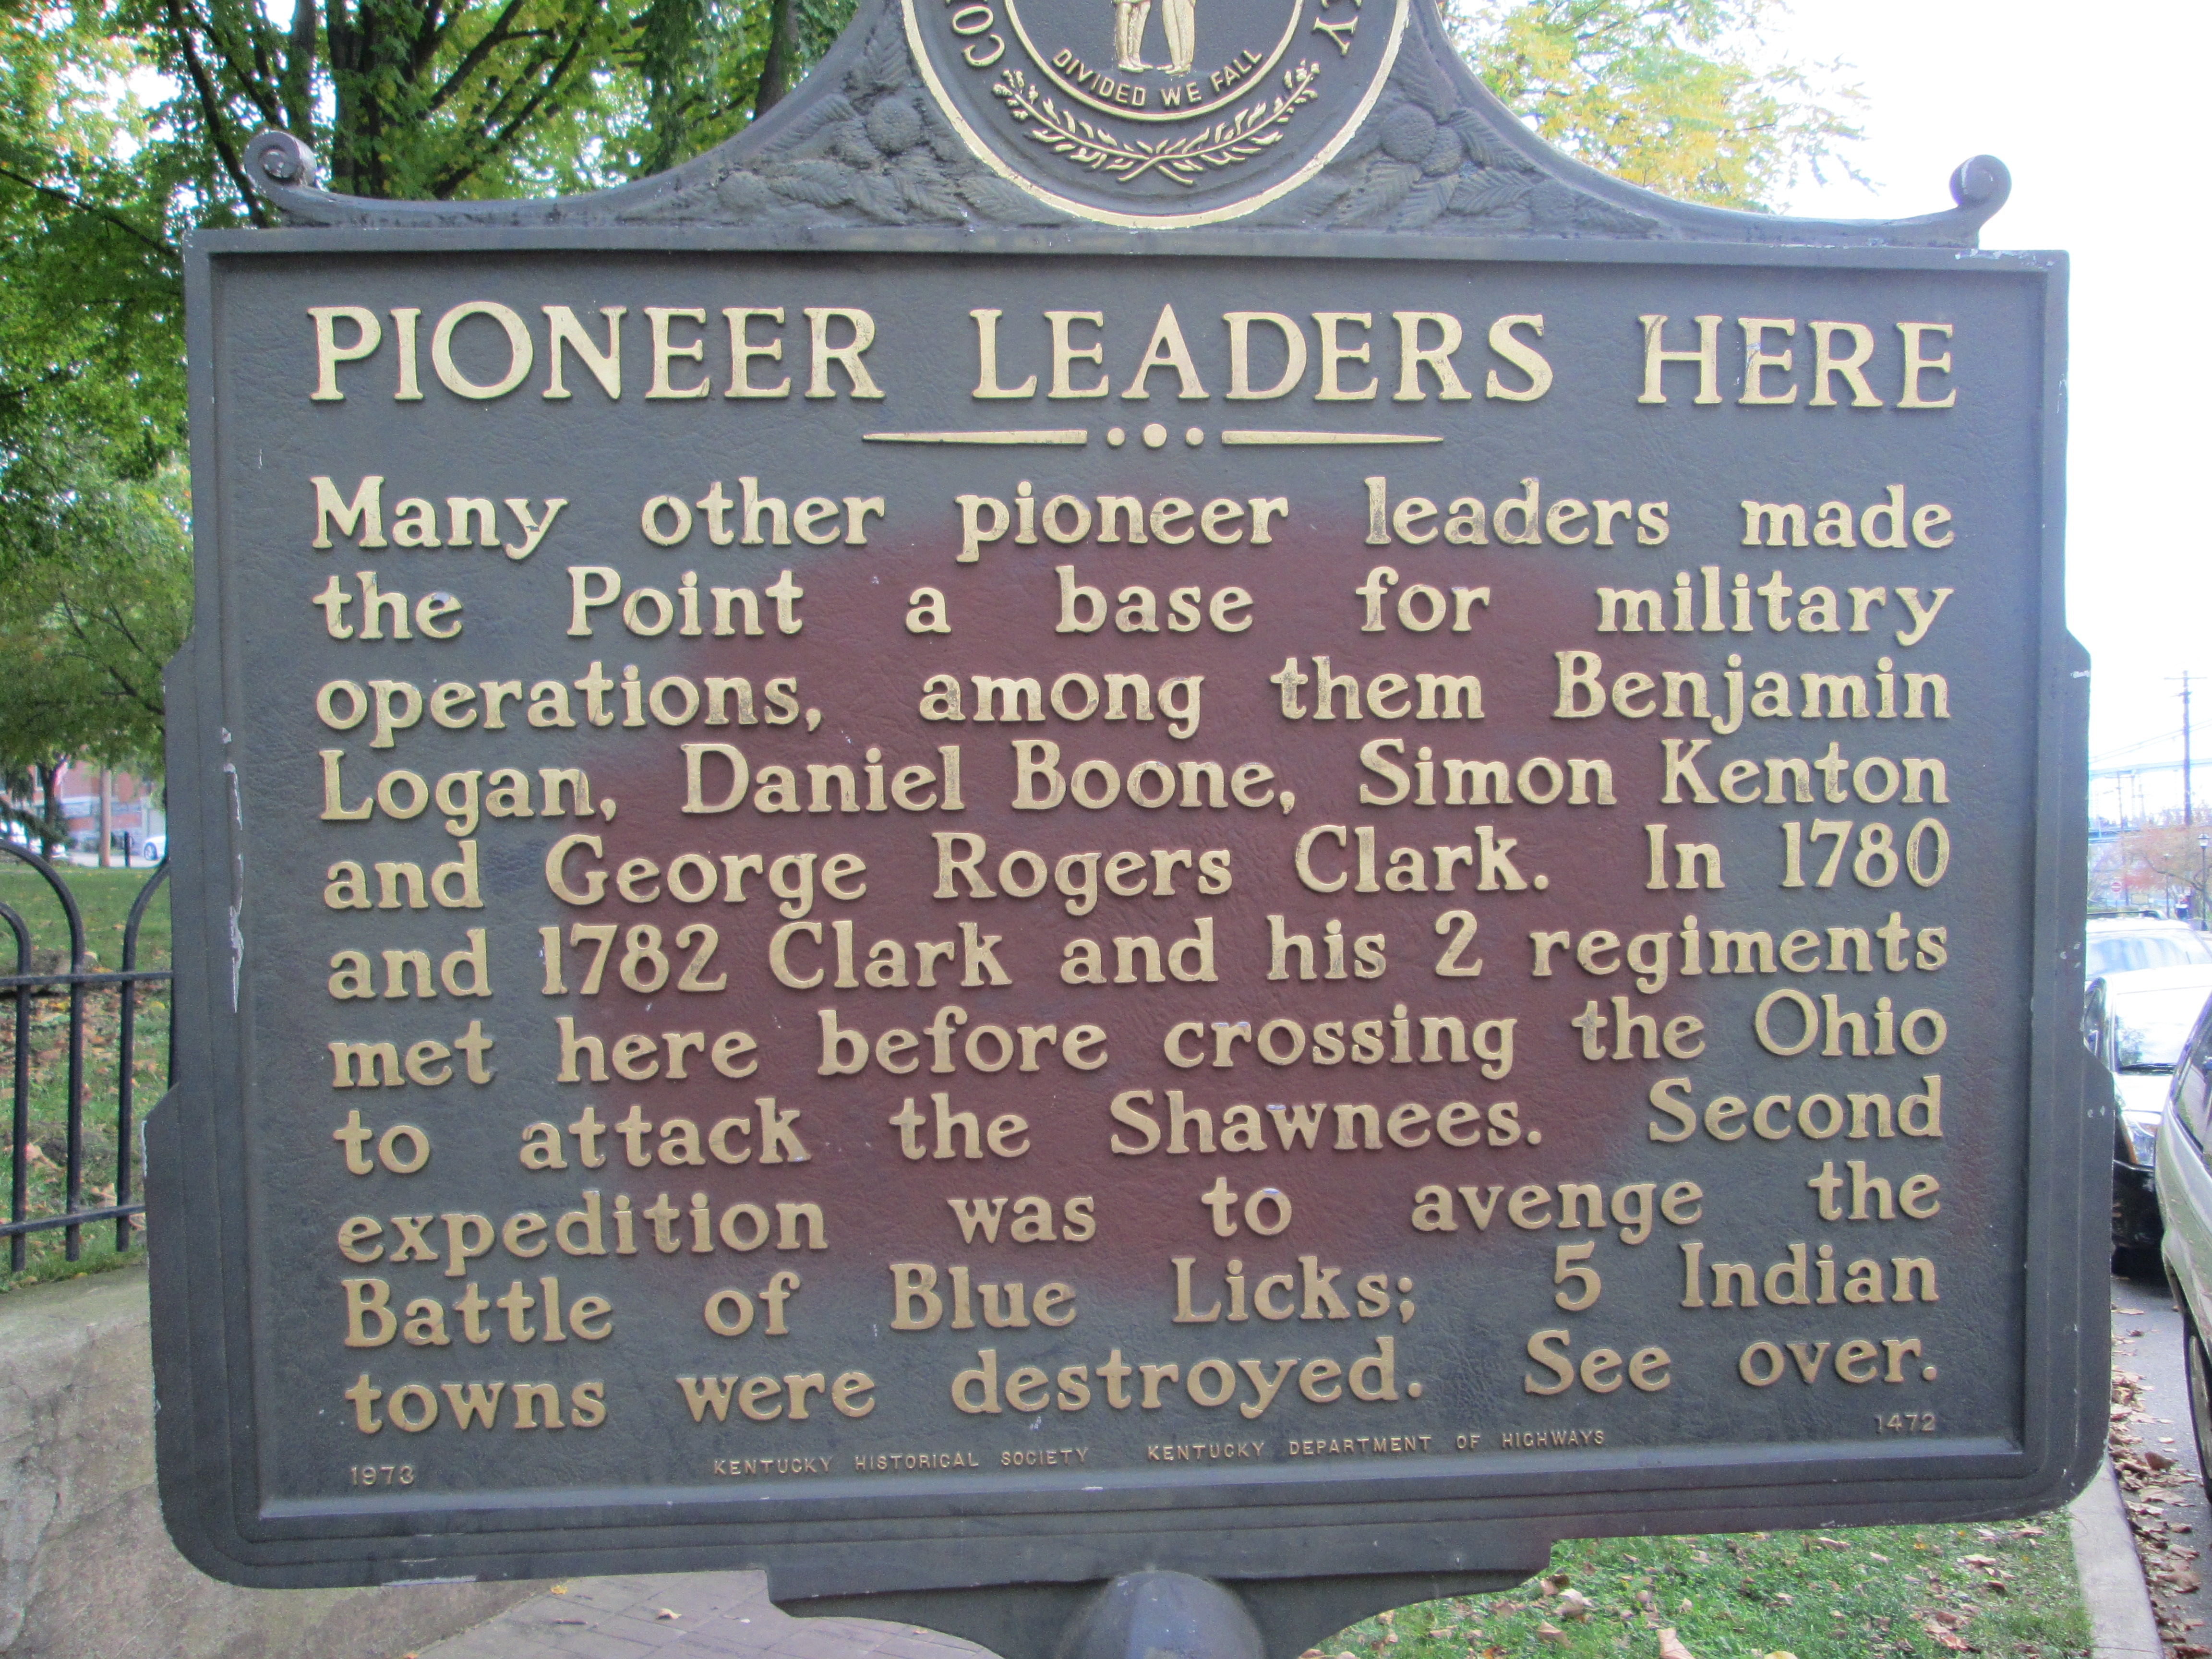 Pioneer Leaders Here Marker